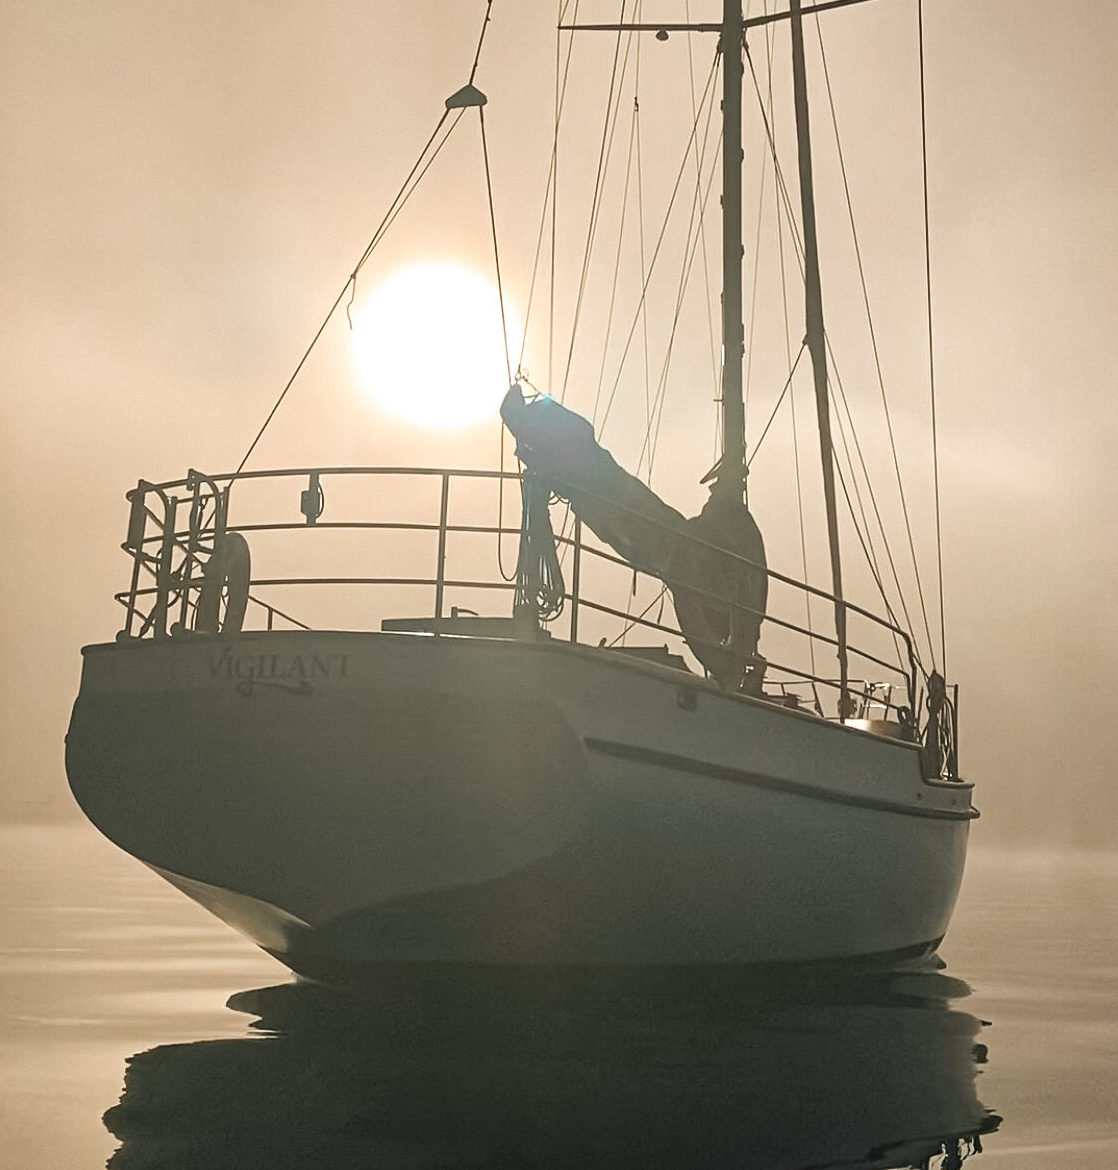 Bowsprit and Anchor chain of Vigilant Yacht